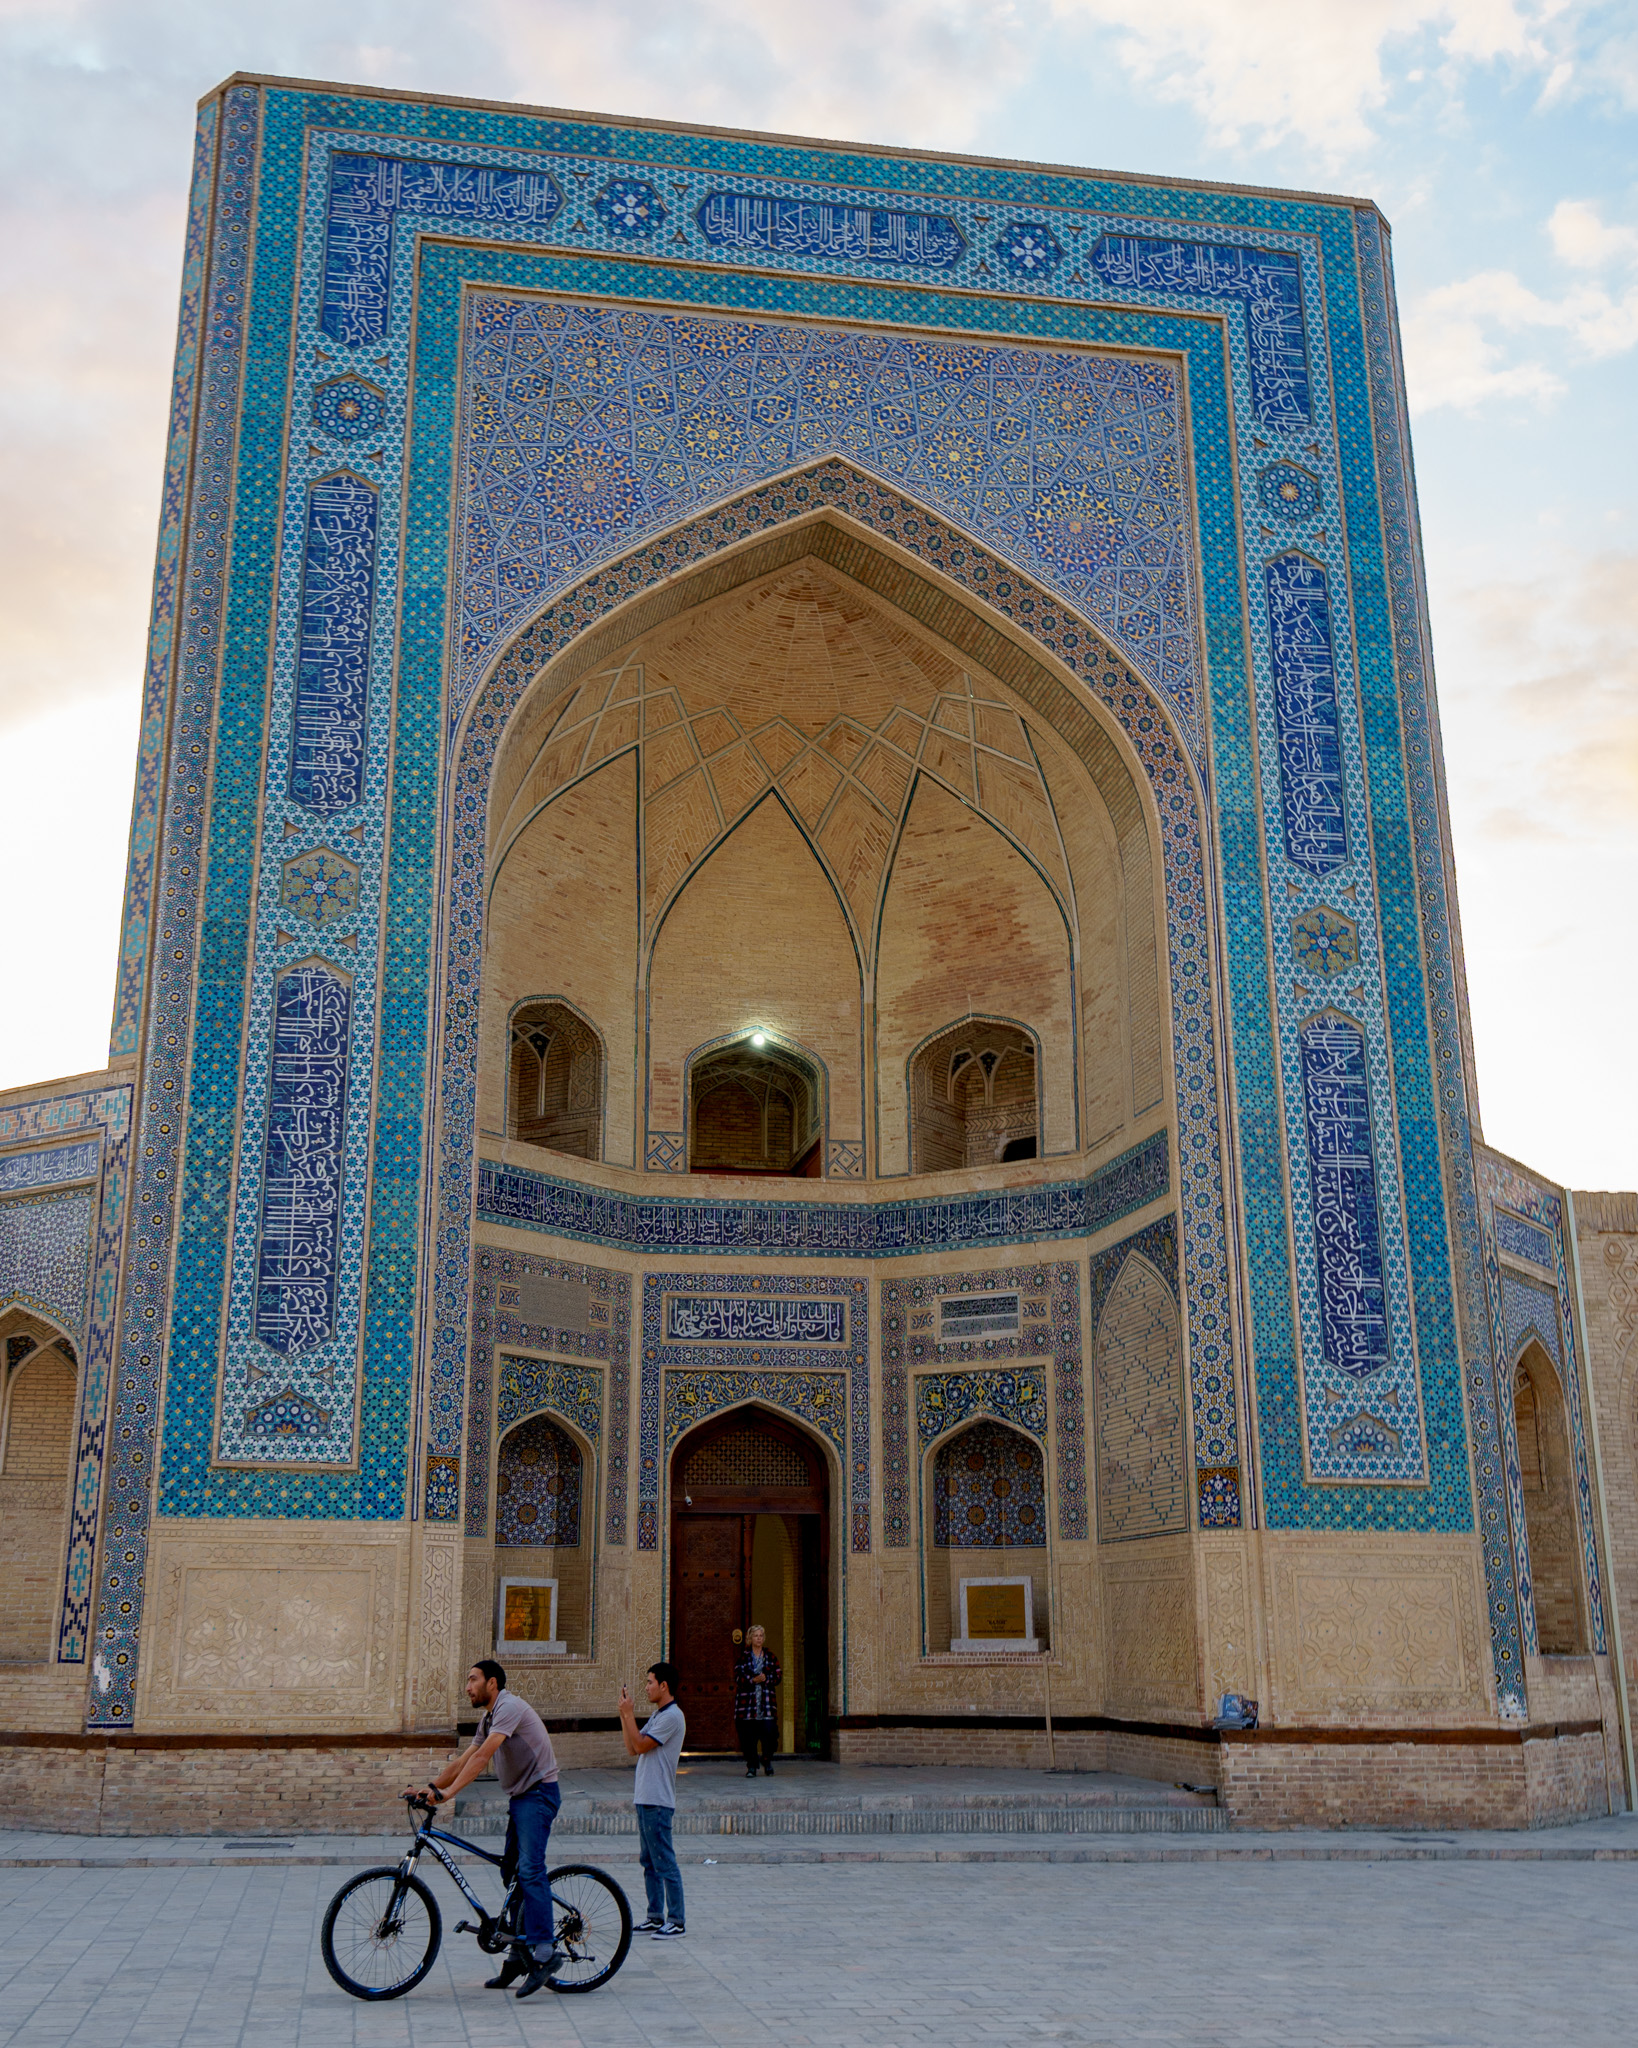 A peaceful sunrise in Bukhara, Uzbekistan